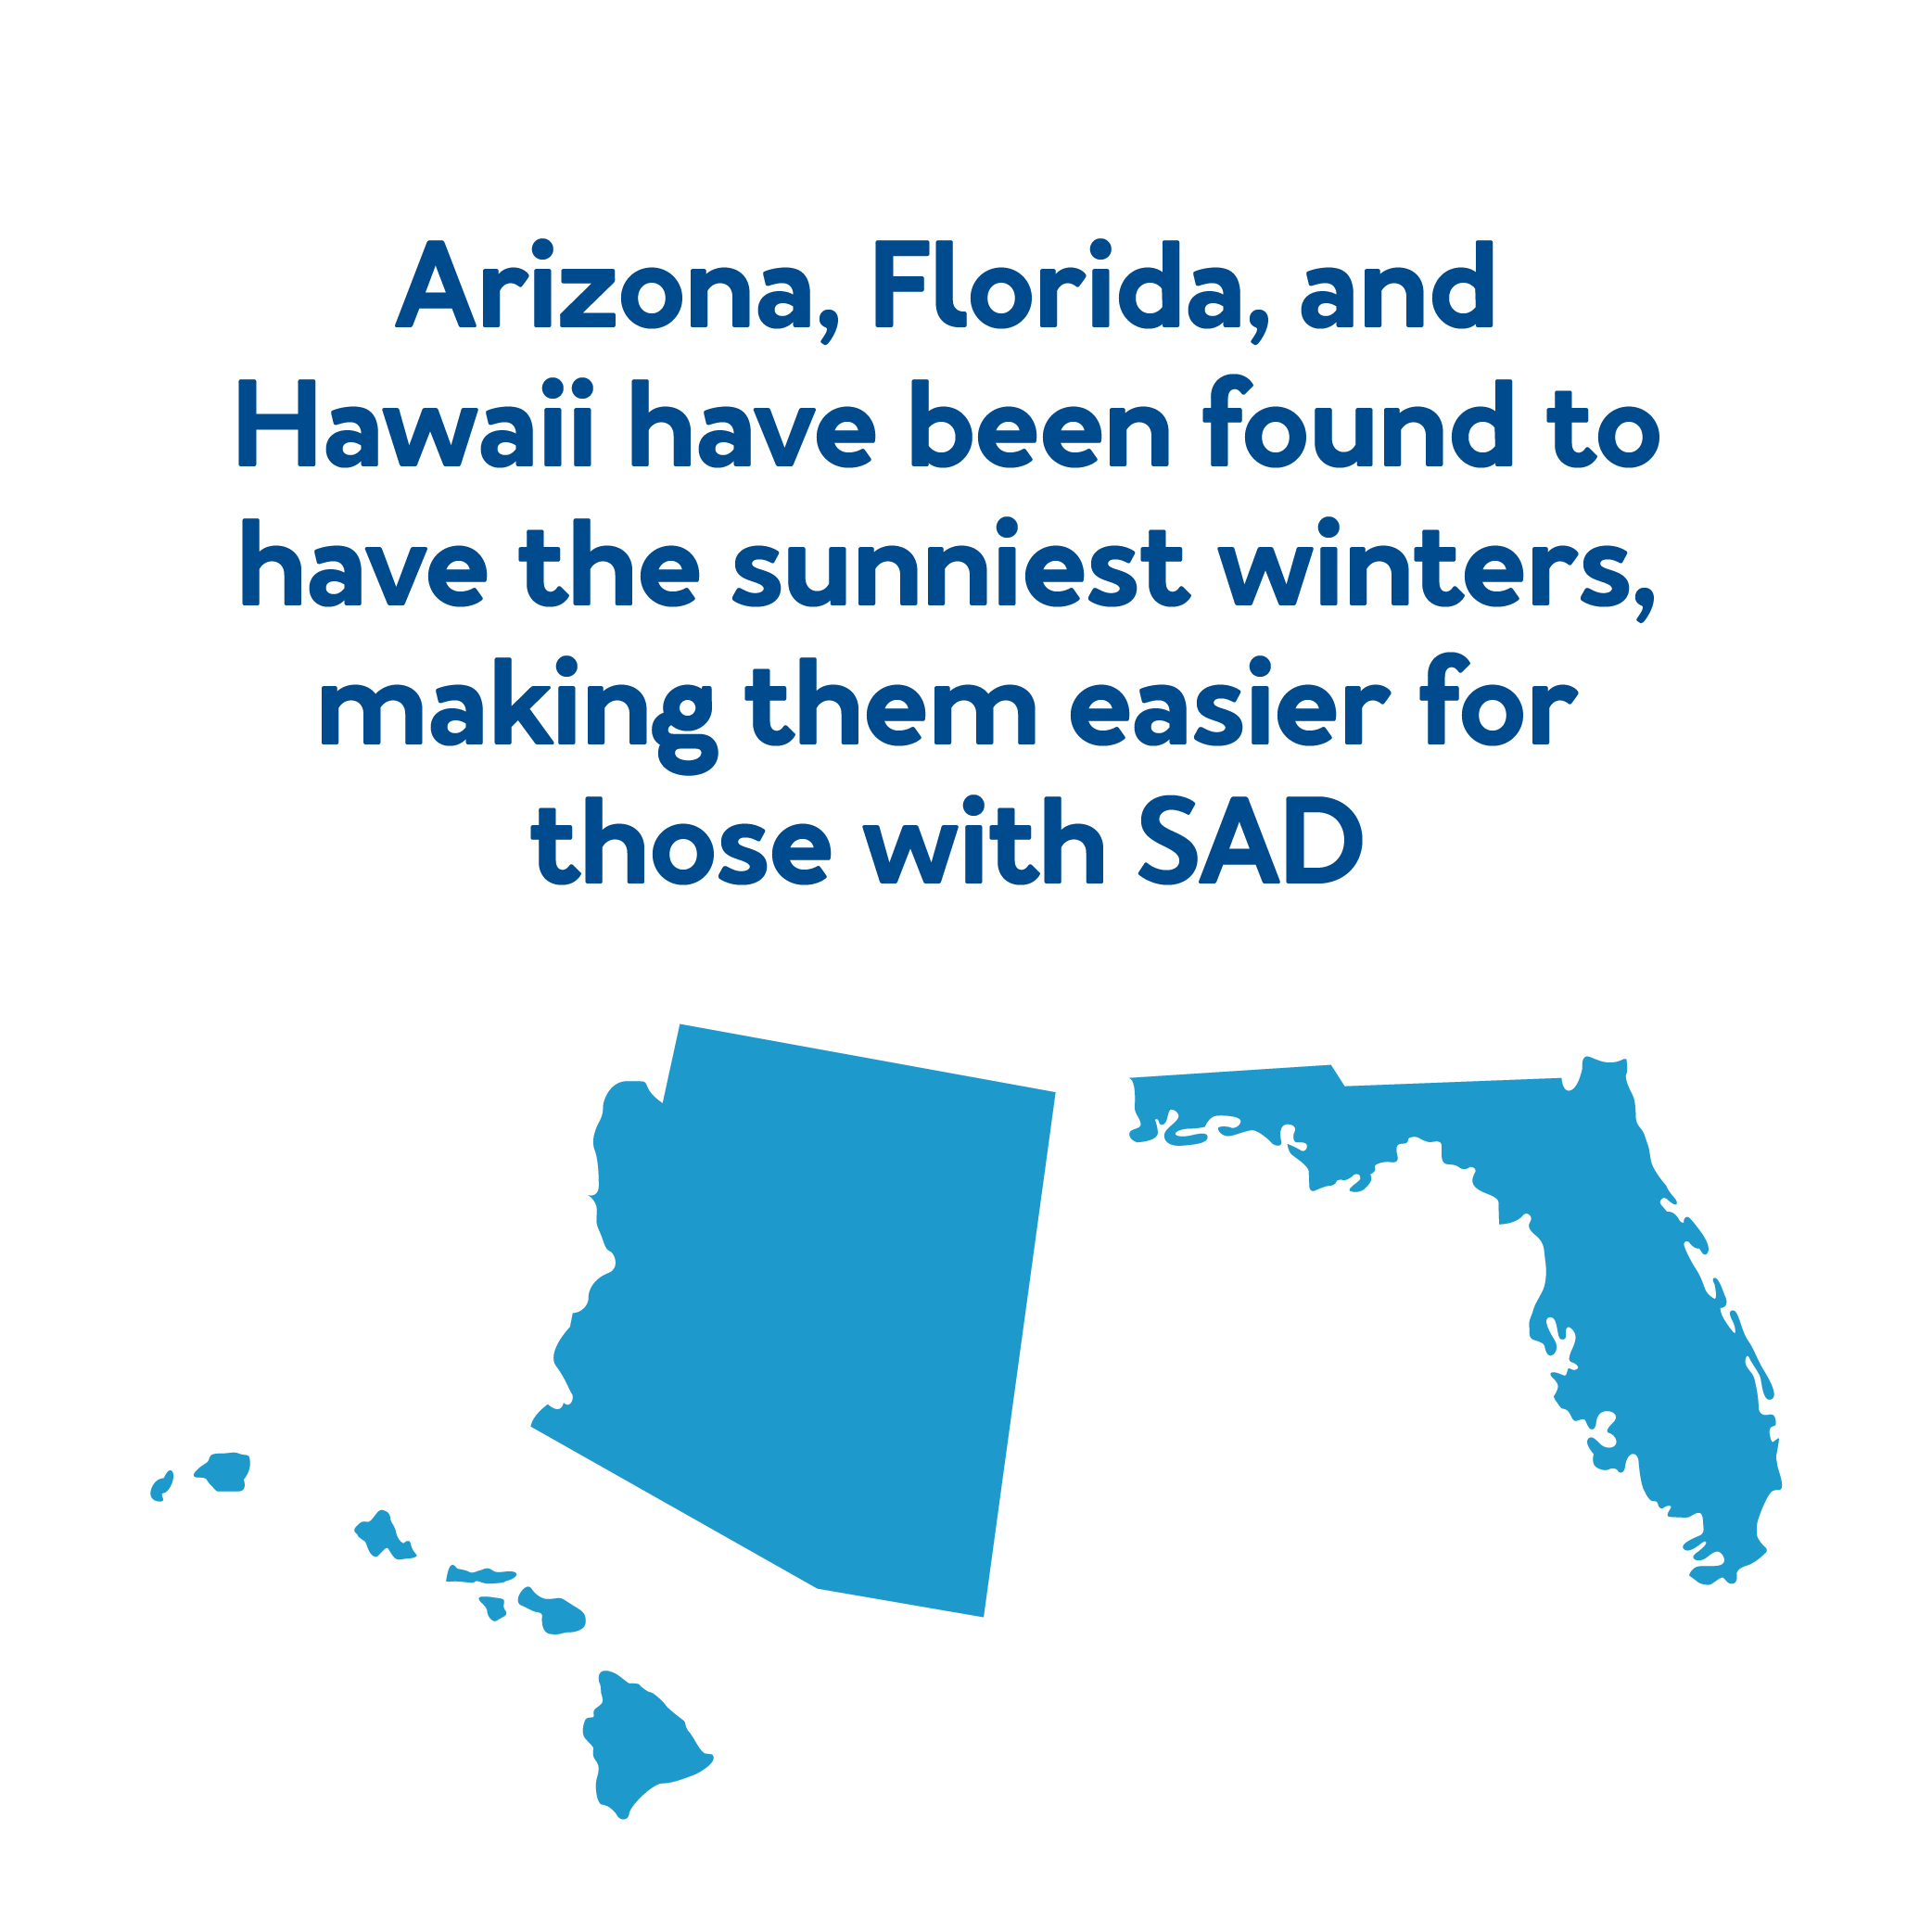 Arizona, Florida, and Hawaii have been found to have the sunniest winters, making them easier for those with SAD .